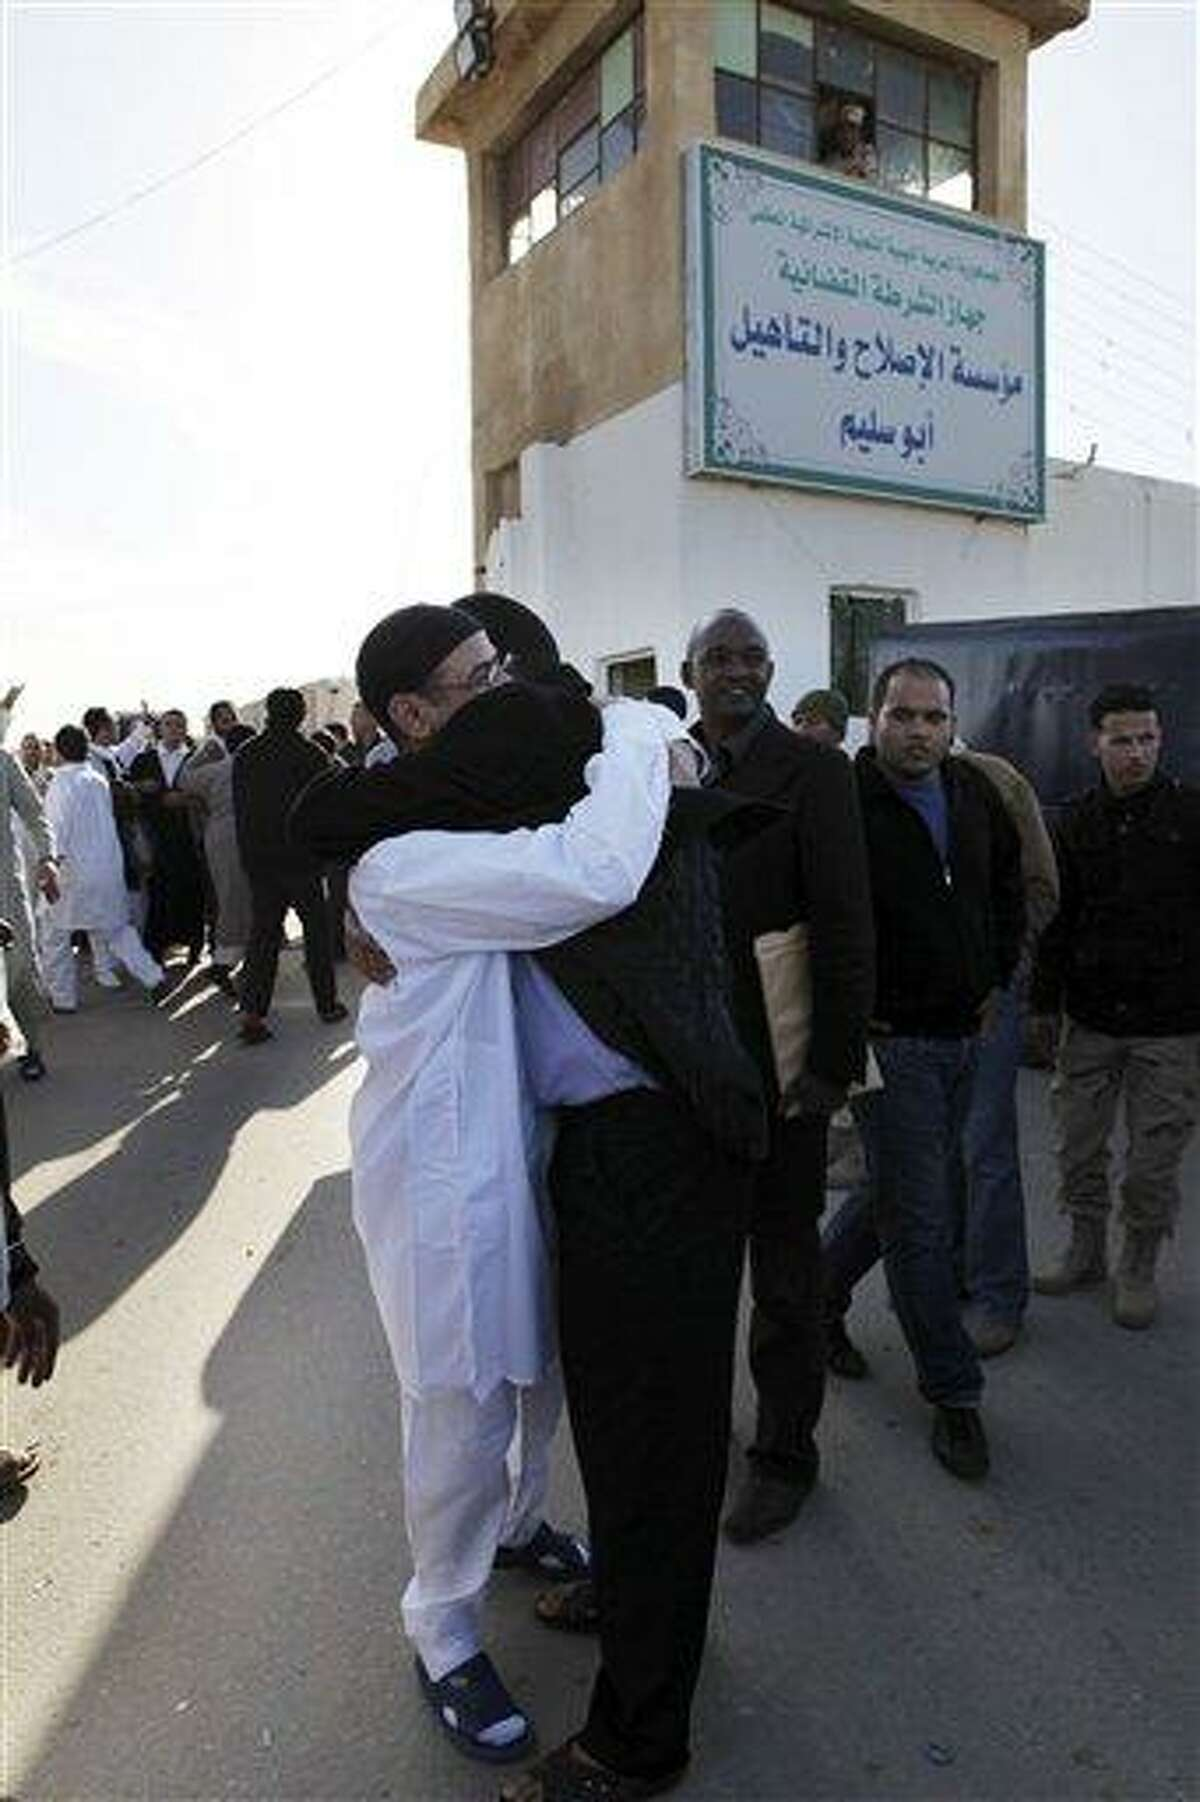 A Libyan prisoner, left, is hugged by his relatives after he was released with a group of 110 prisoners from Abu Salim, Libya's most notorious prison, in Tripoli, Libya, Wednesday, Feb. 16, 2011. Egypt-inspired unrest spread against Libya's longtime ruler Moammar Gadhafi on Wednesday, with riot police clashing with protesters in the second-largest city of Benghazi and marchers setting fire to security headquarters and a police station in the city of Zentan, witnesses said. Gadhafi's government sought to allay further unrest by proposing the doubling of government employees' salaries and releasing 110 suspected Islamic militants who oppose him tactics similar to those used by other Arab regimes in the recent wave of protests. (AP Photo/ Abdel Magid Al Fergany)